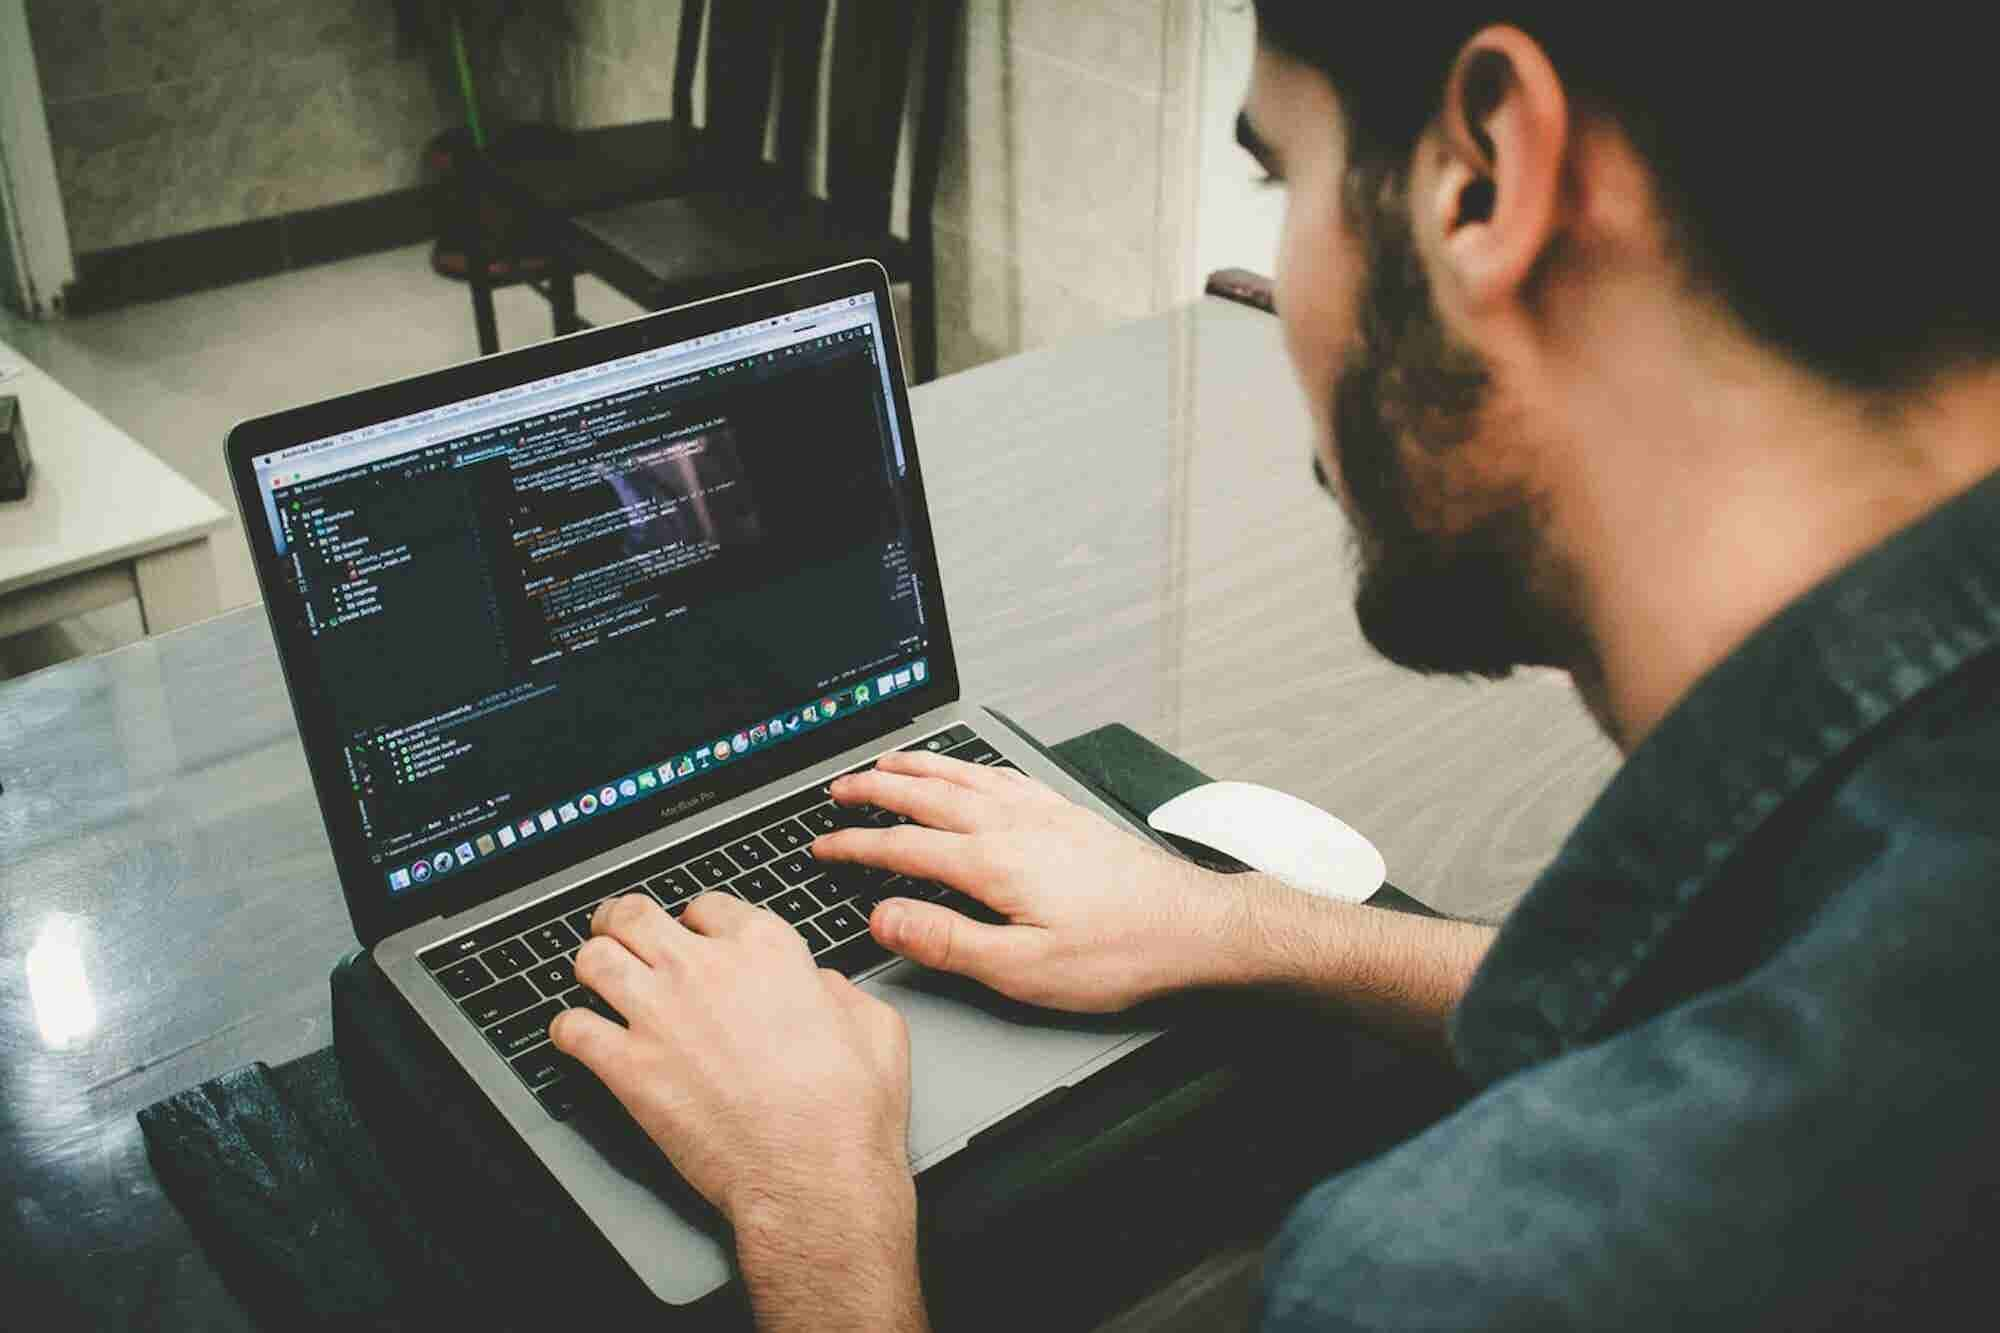 Kickstart a New Career and Learn How to Build Websites for $15